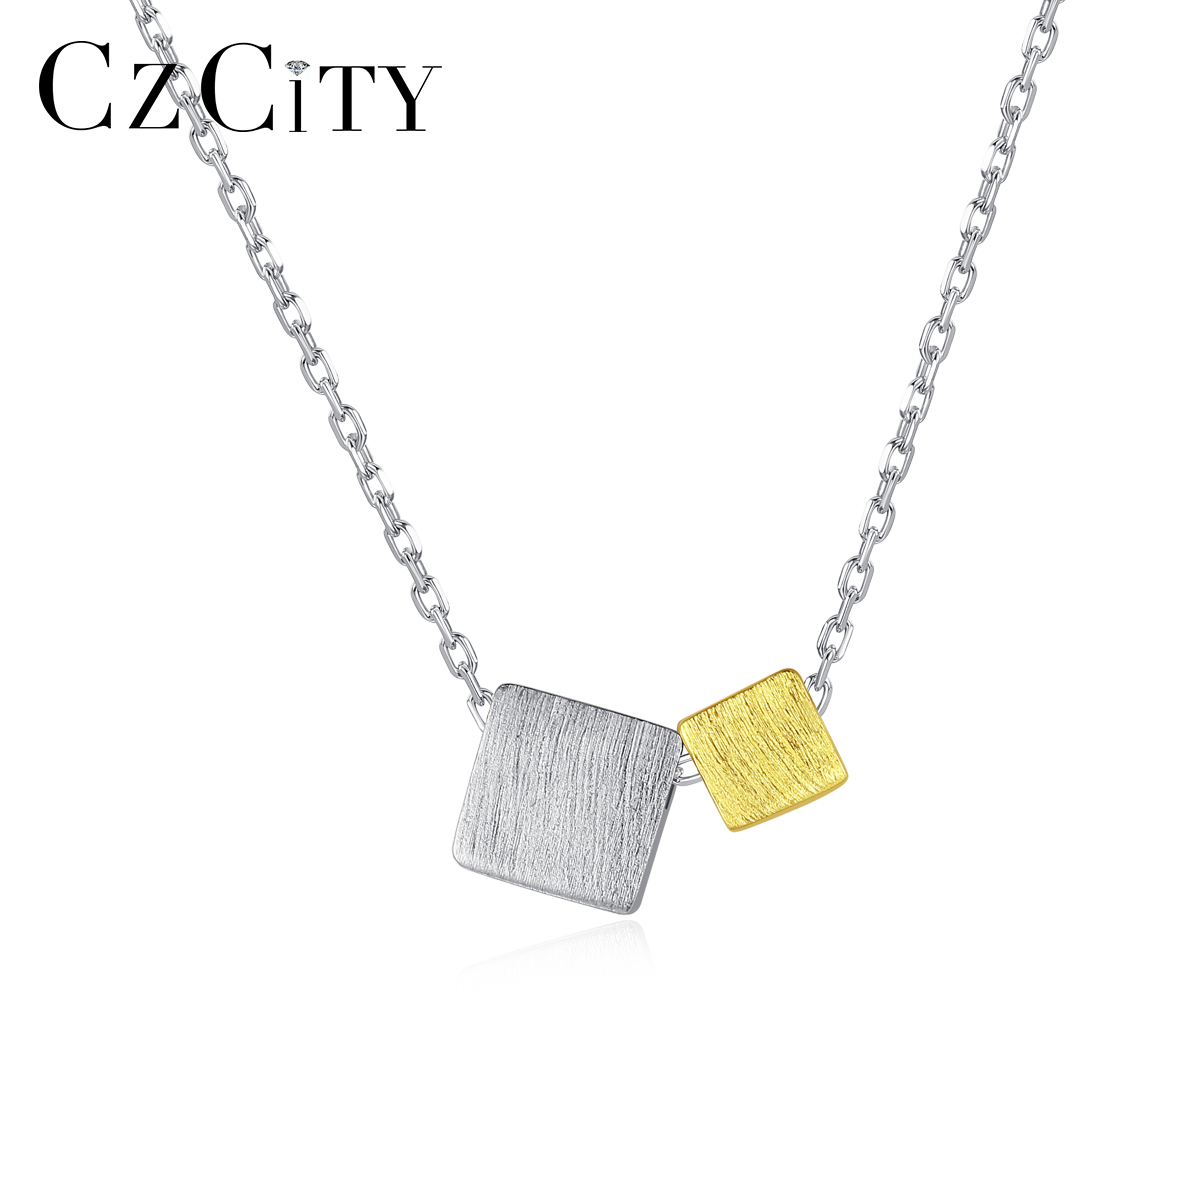 CZCITY New Design Big&Small Square 925 Sterling Silver Pendant Necklace For Women Silver&Gold Color Trendy Fine Jewelry SN034S